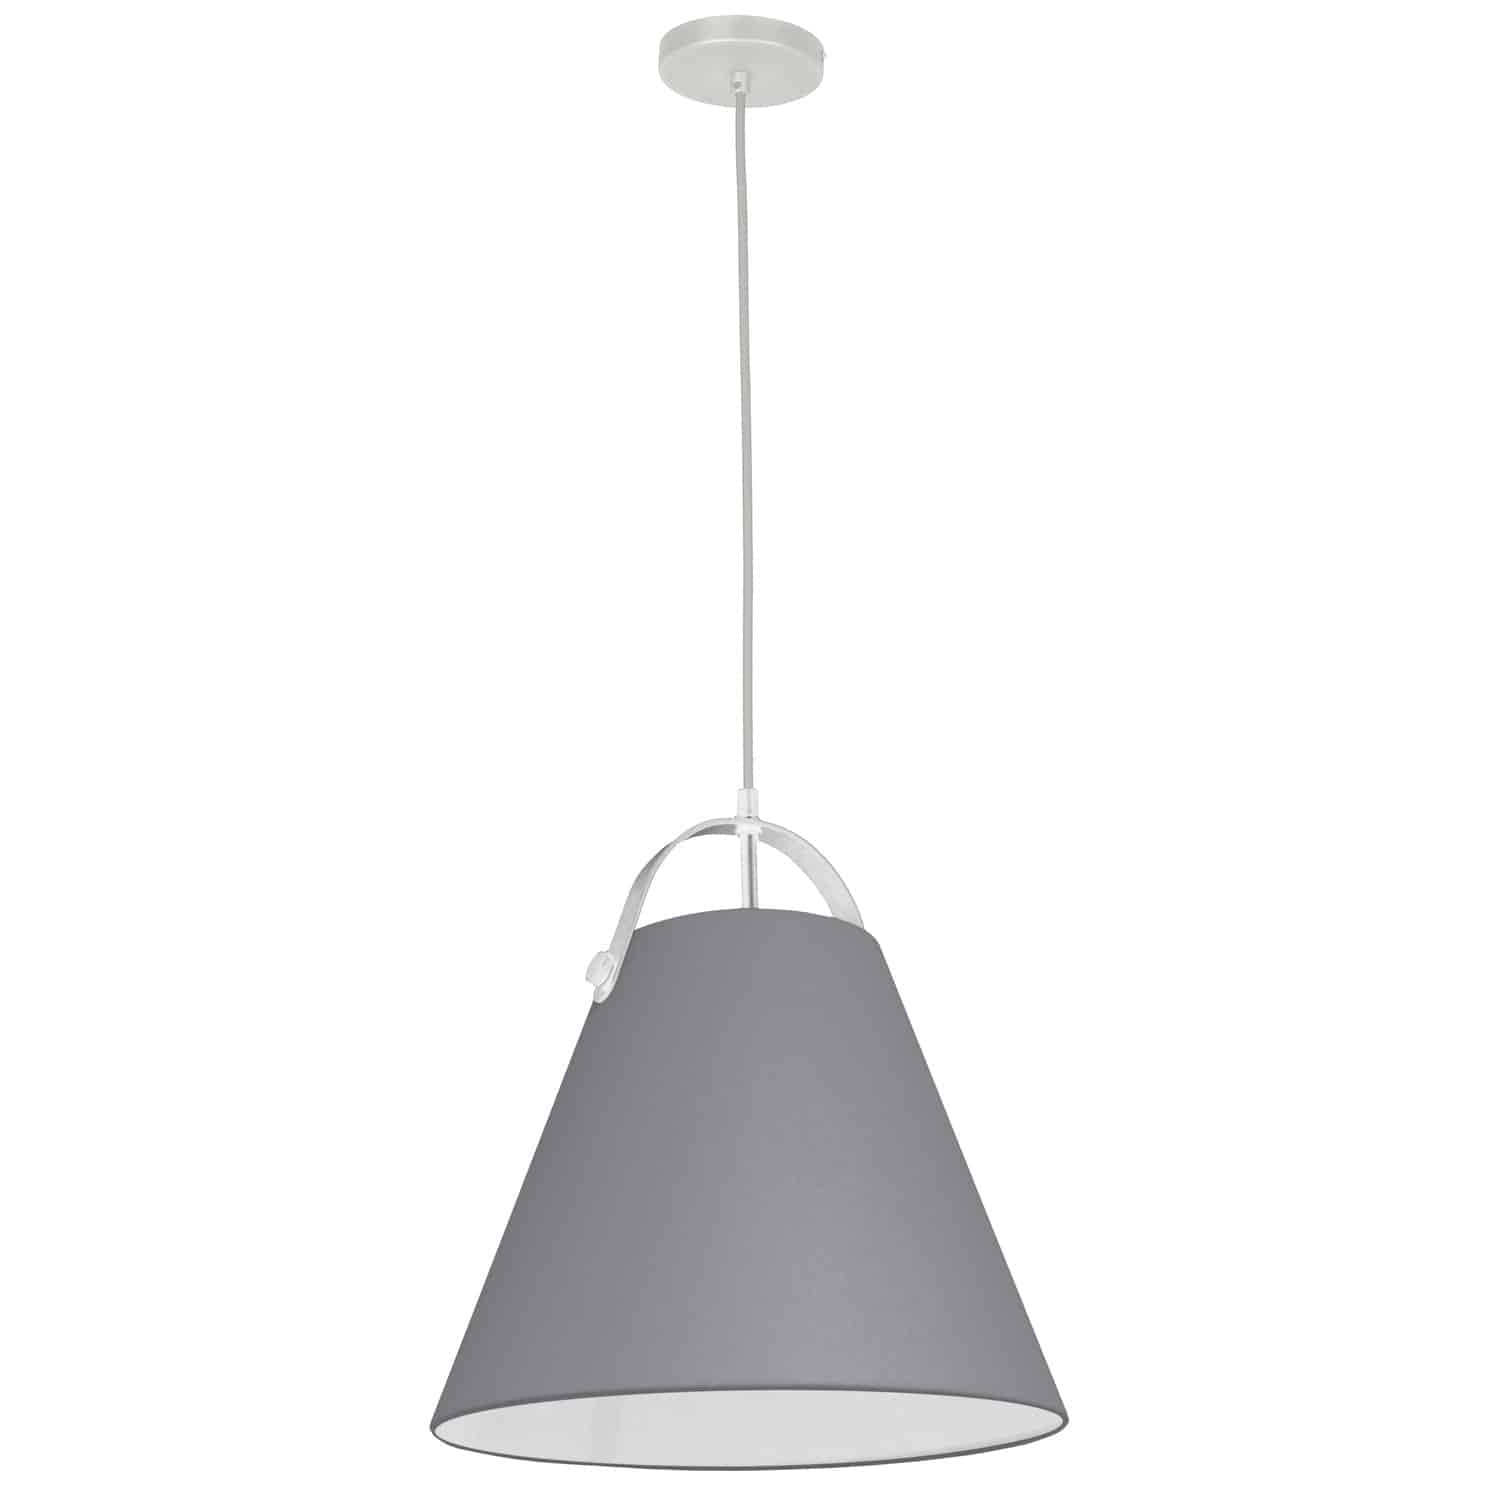 1 Light Emperor Pendant White with Grey Shade